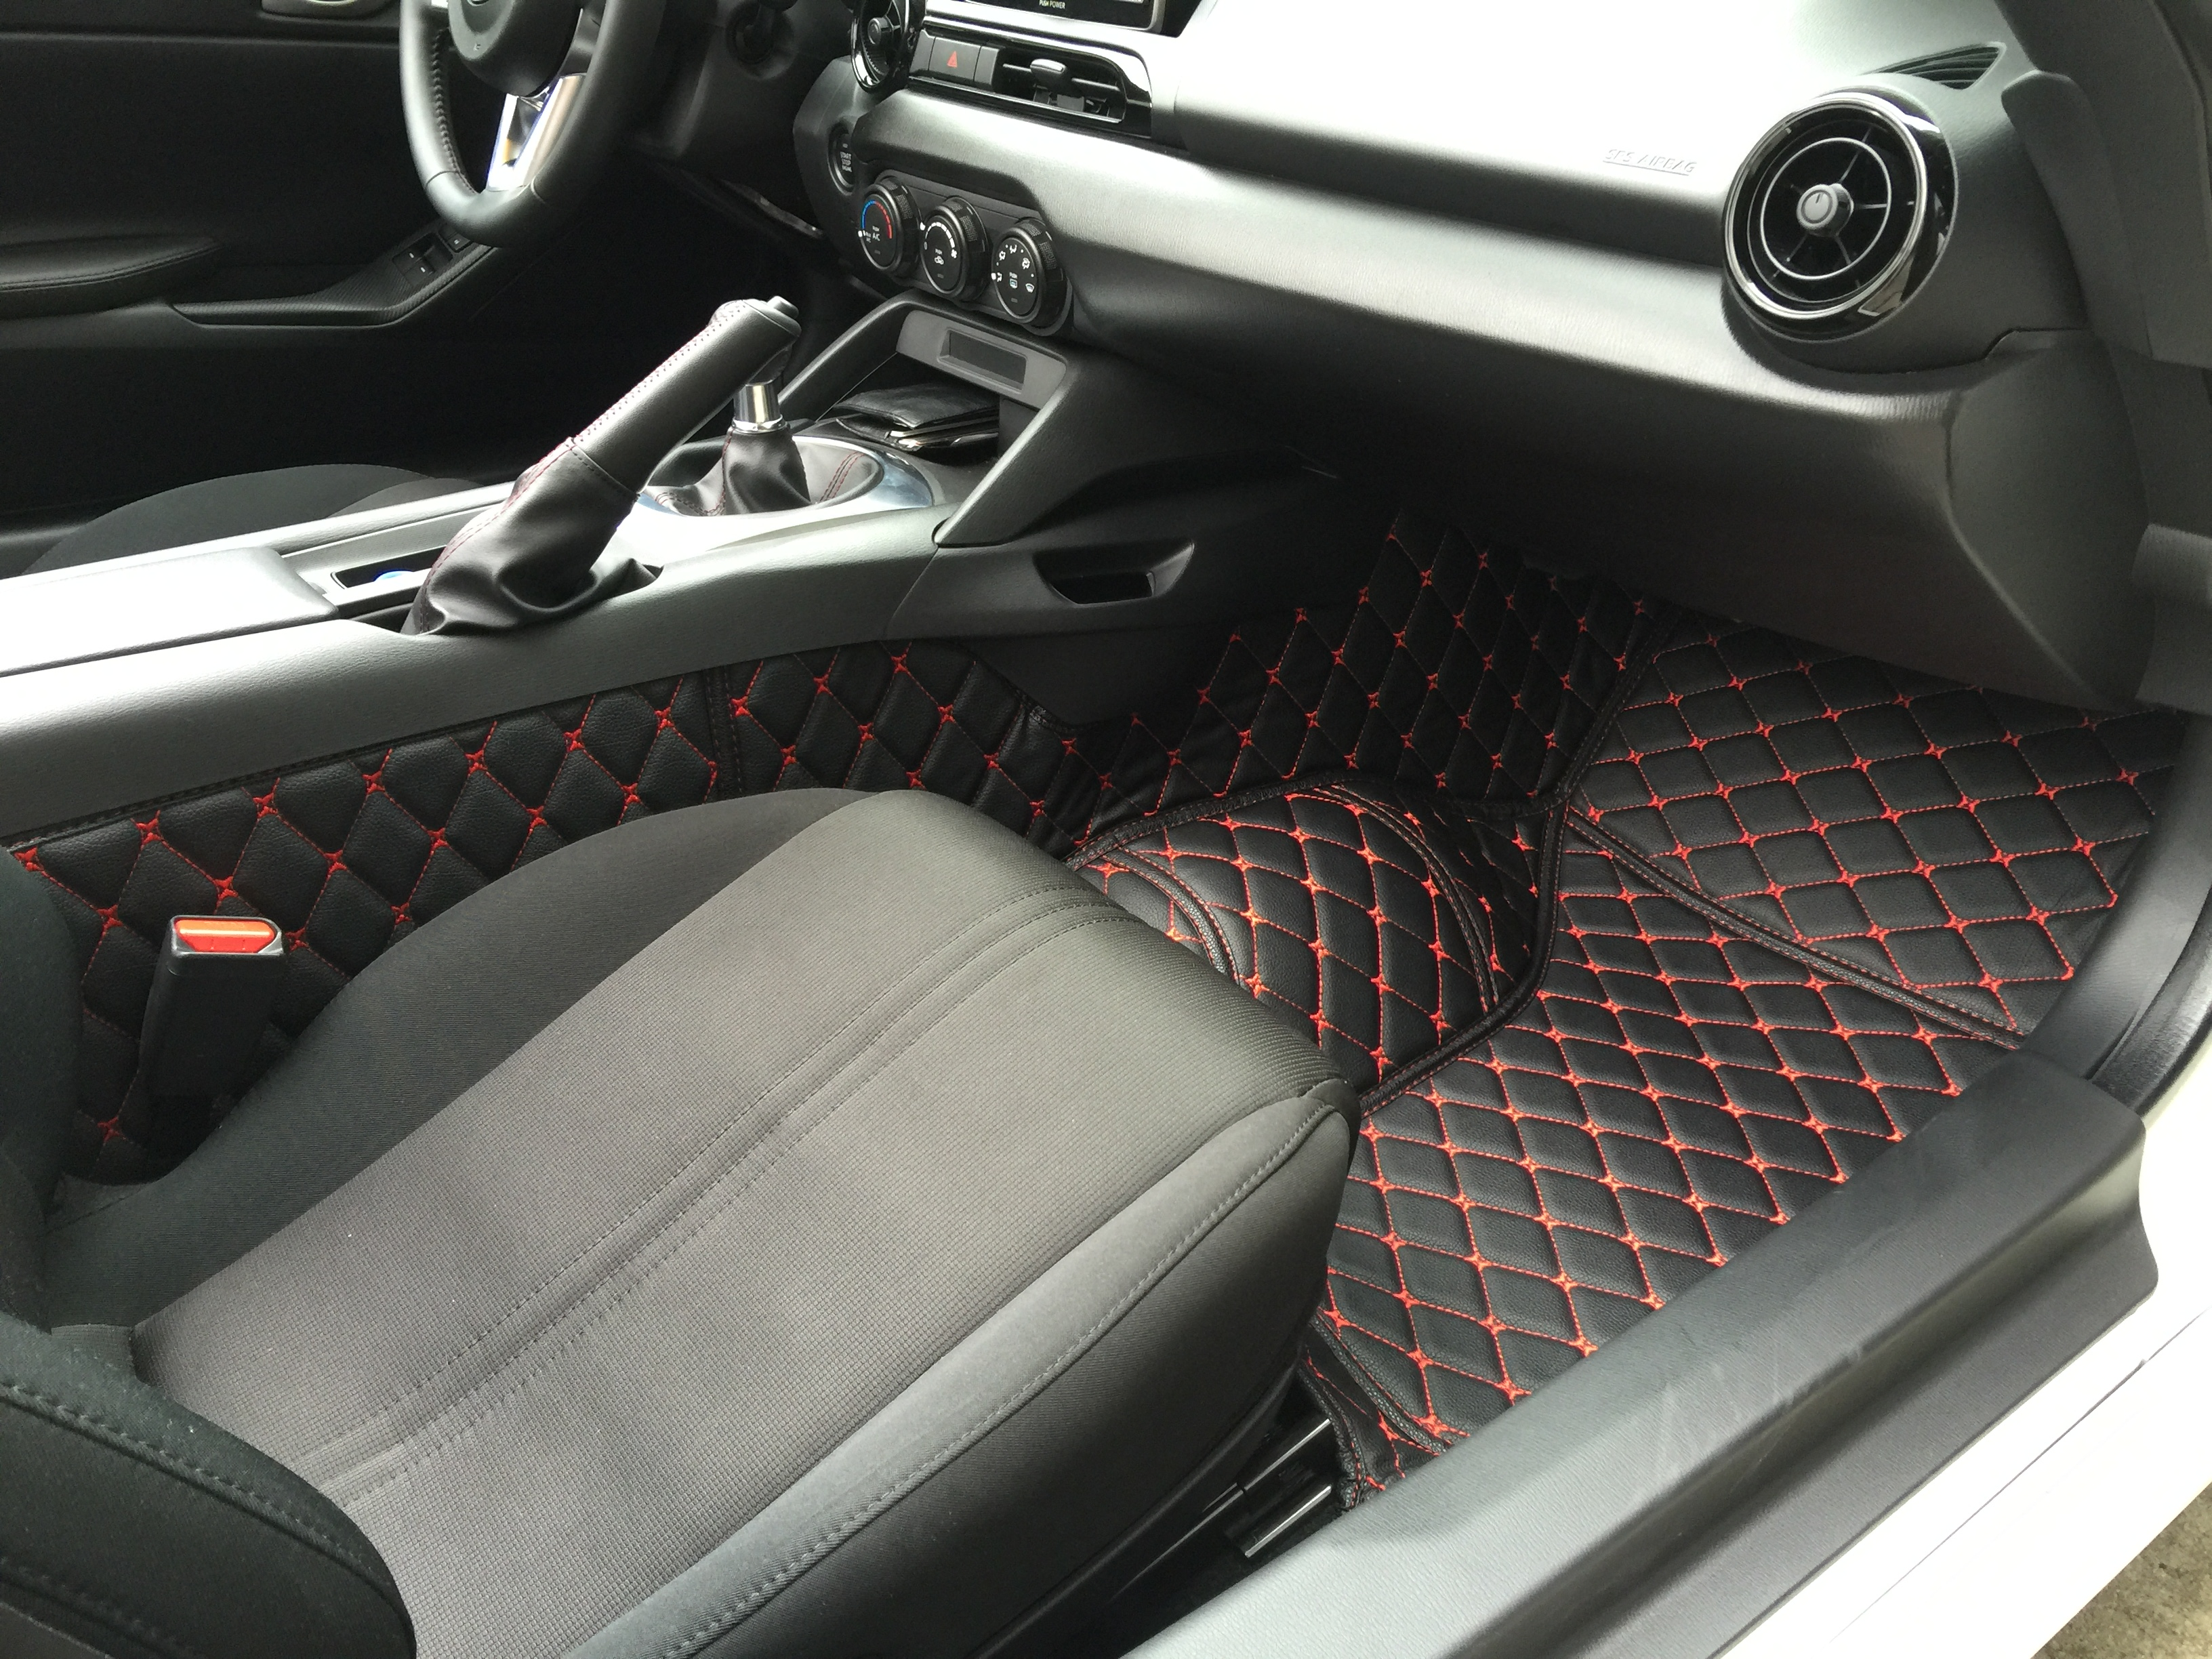 mat car accessories page this img been mats original focus to rs bar rubber floor view click image resized is sized has forum full the